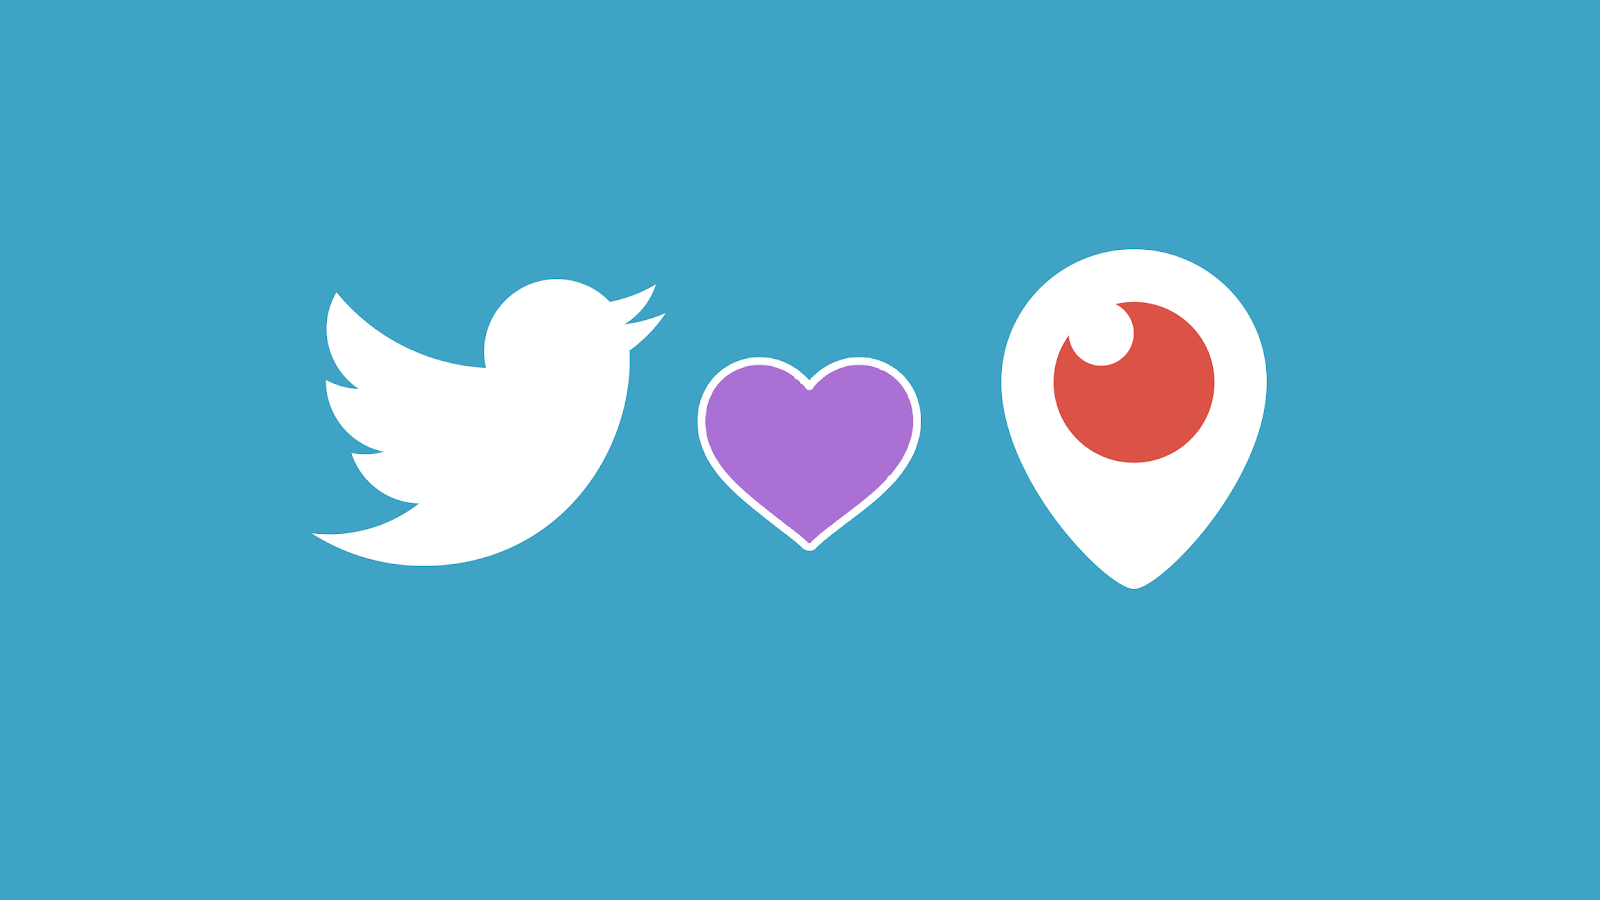 Twitter will discontinue its standalone Periscope apps in March